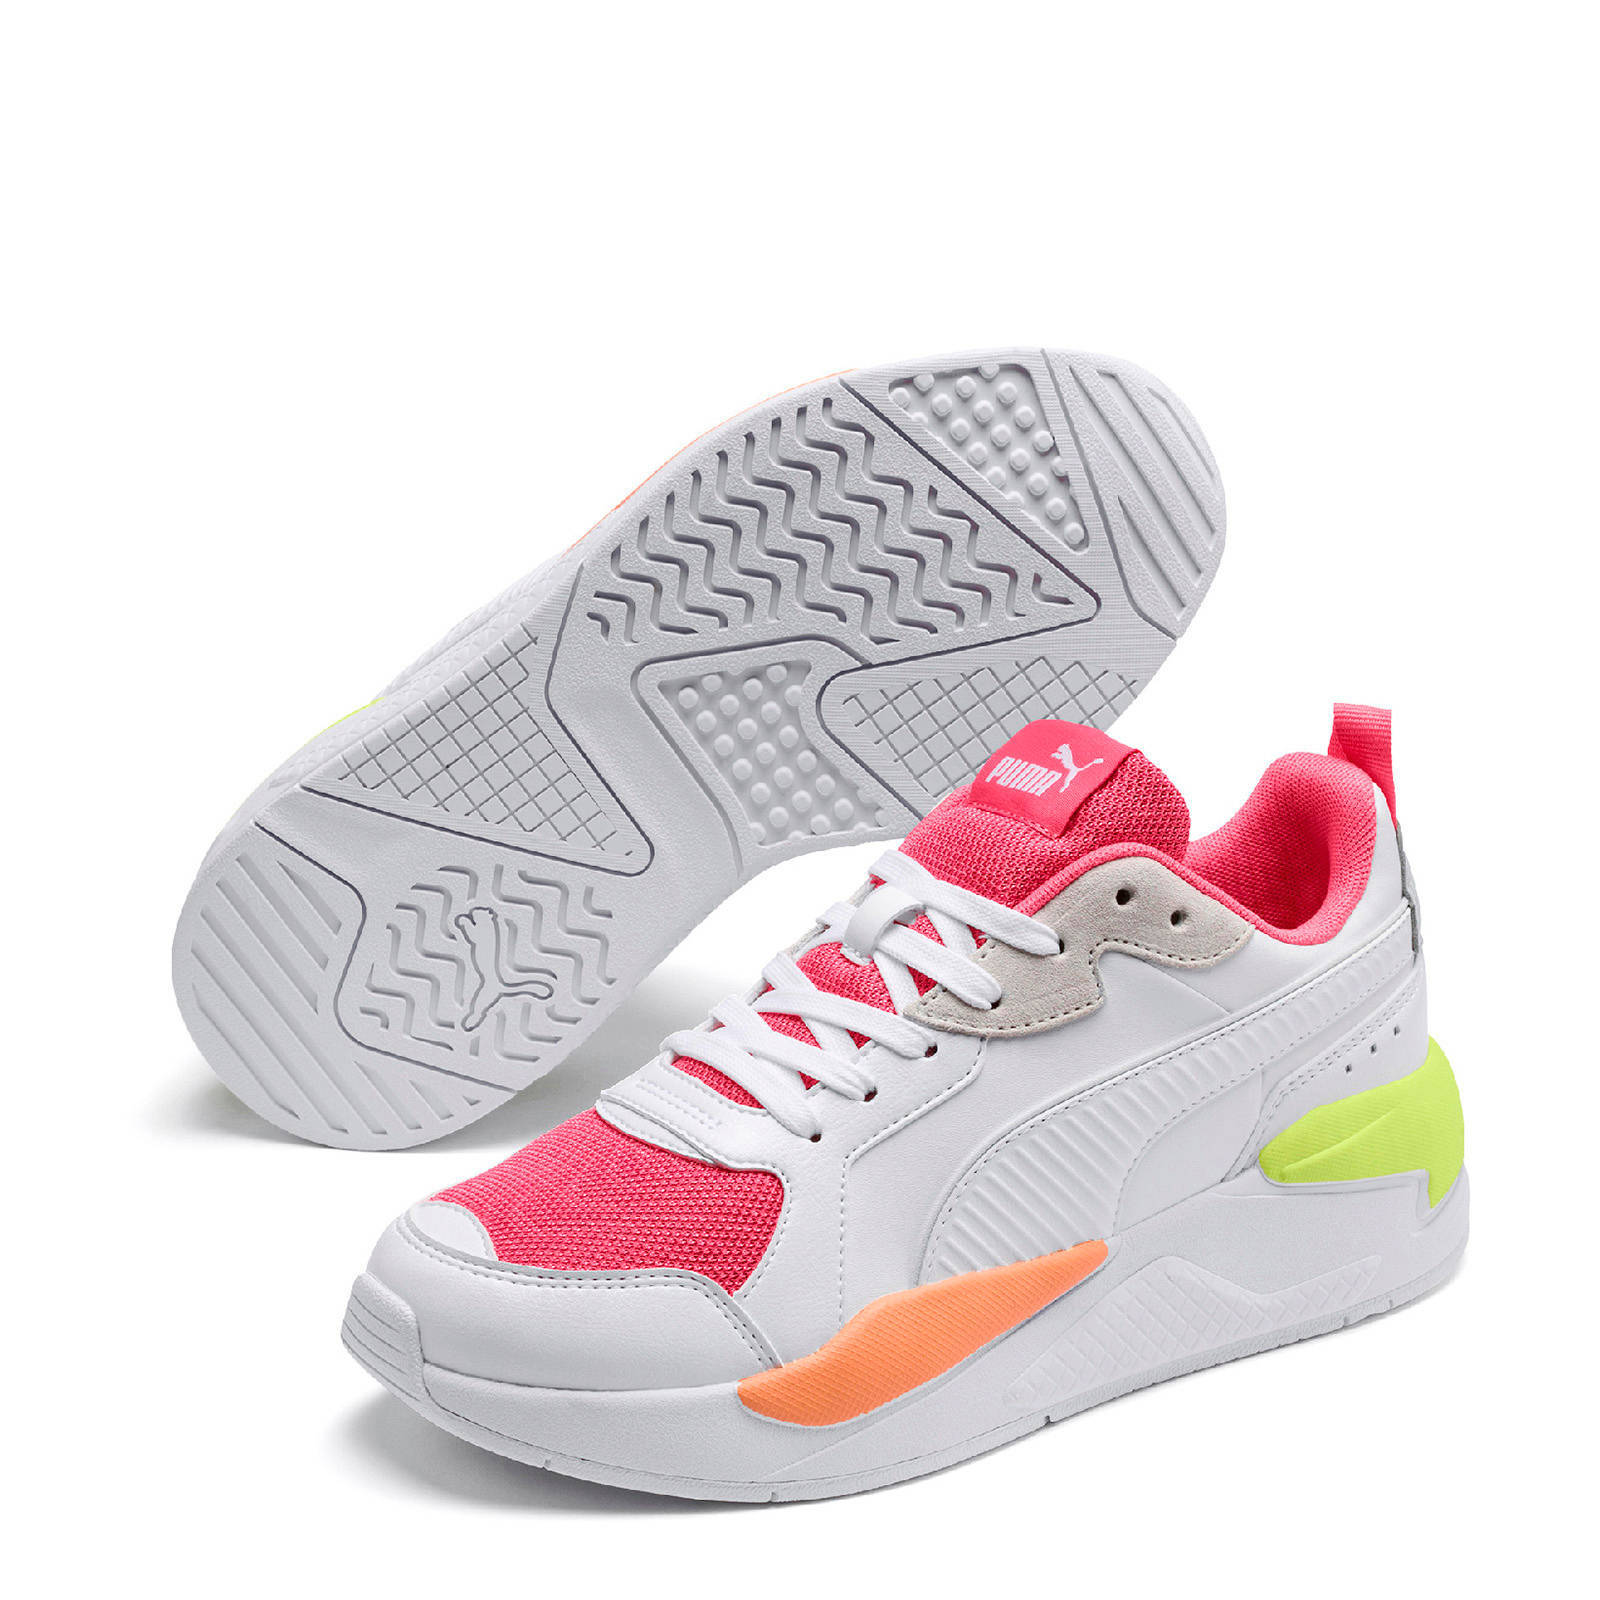 Puma X-Ray Game sneakers wit/roze/geel   wehkamp